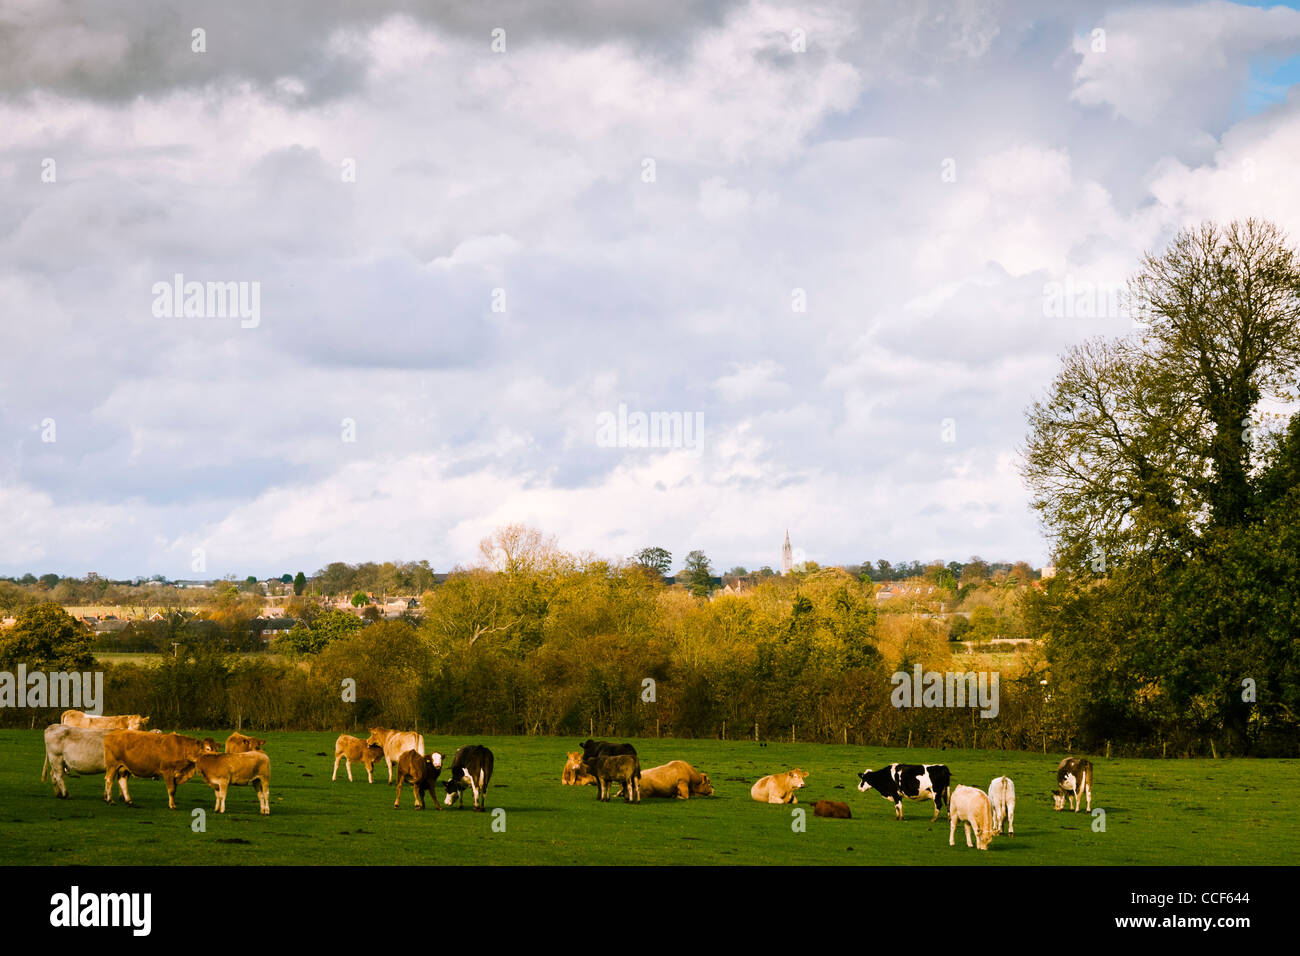 View across a cattle field in Cosgrove, Northamptonshire, with Hanslope church in the background - Stock Image